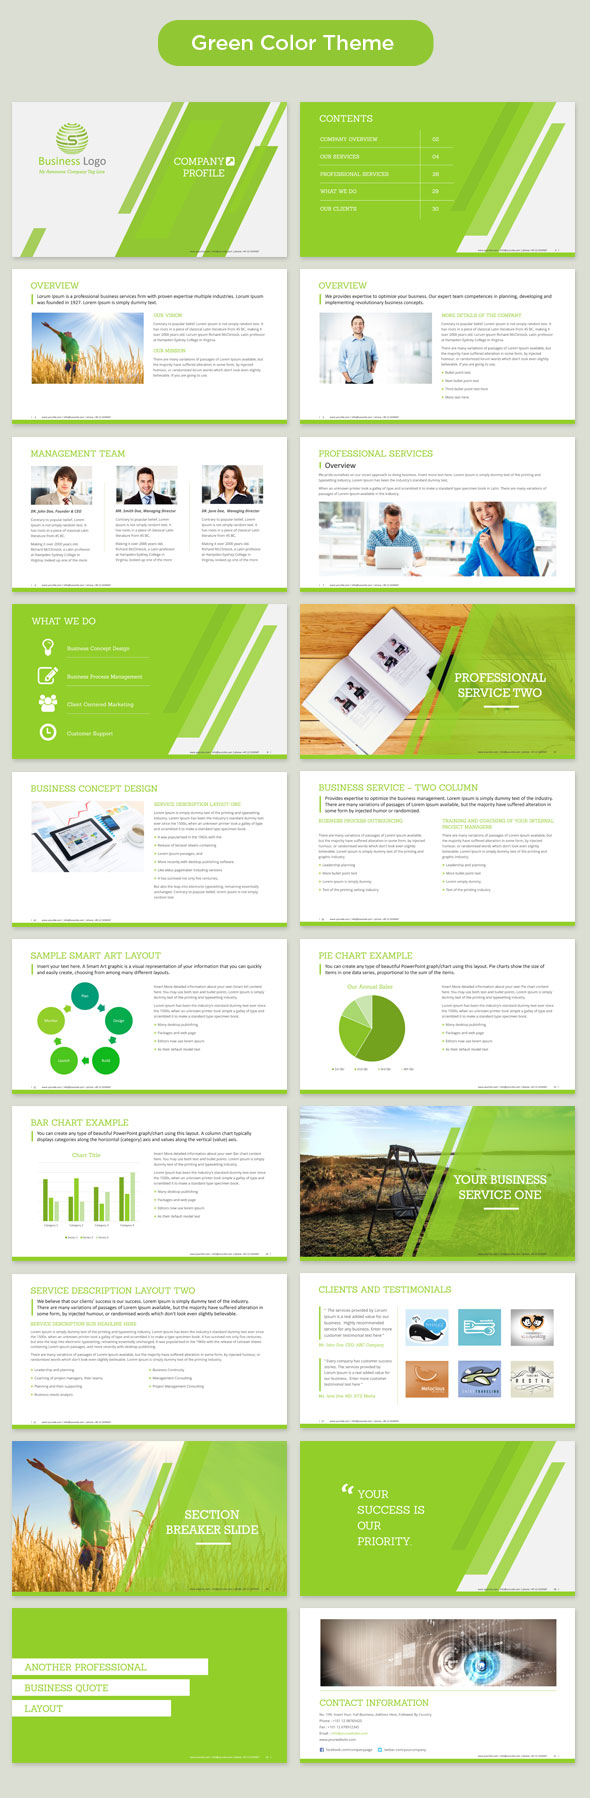 Corporate Profile Template bill of sale for goods – Templates for Company Profile